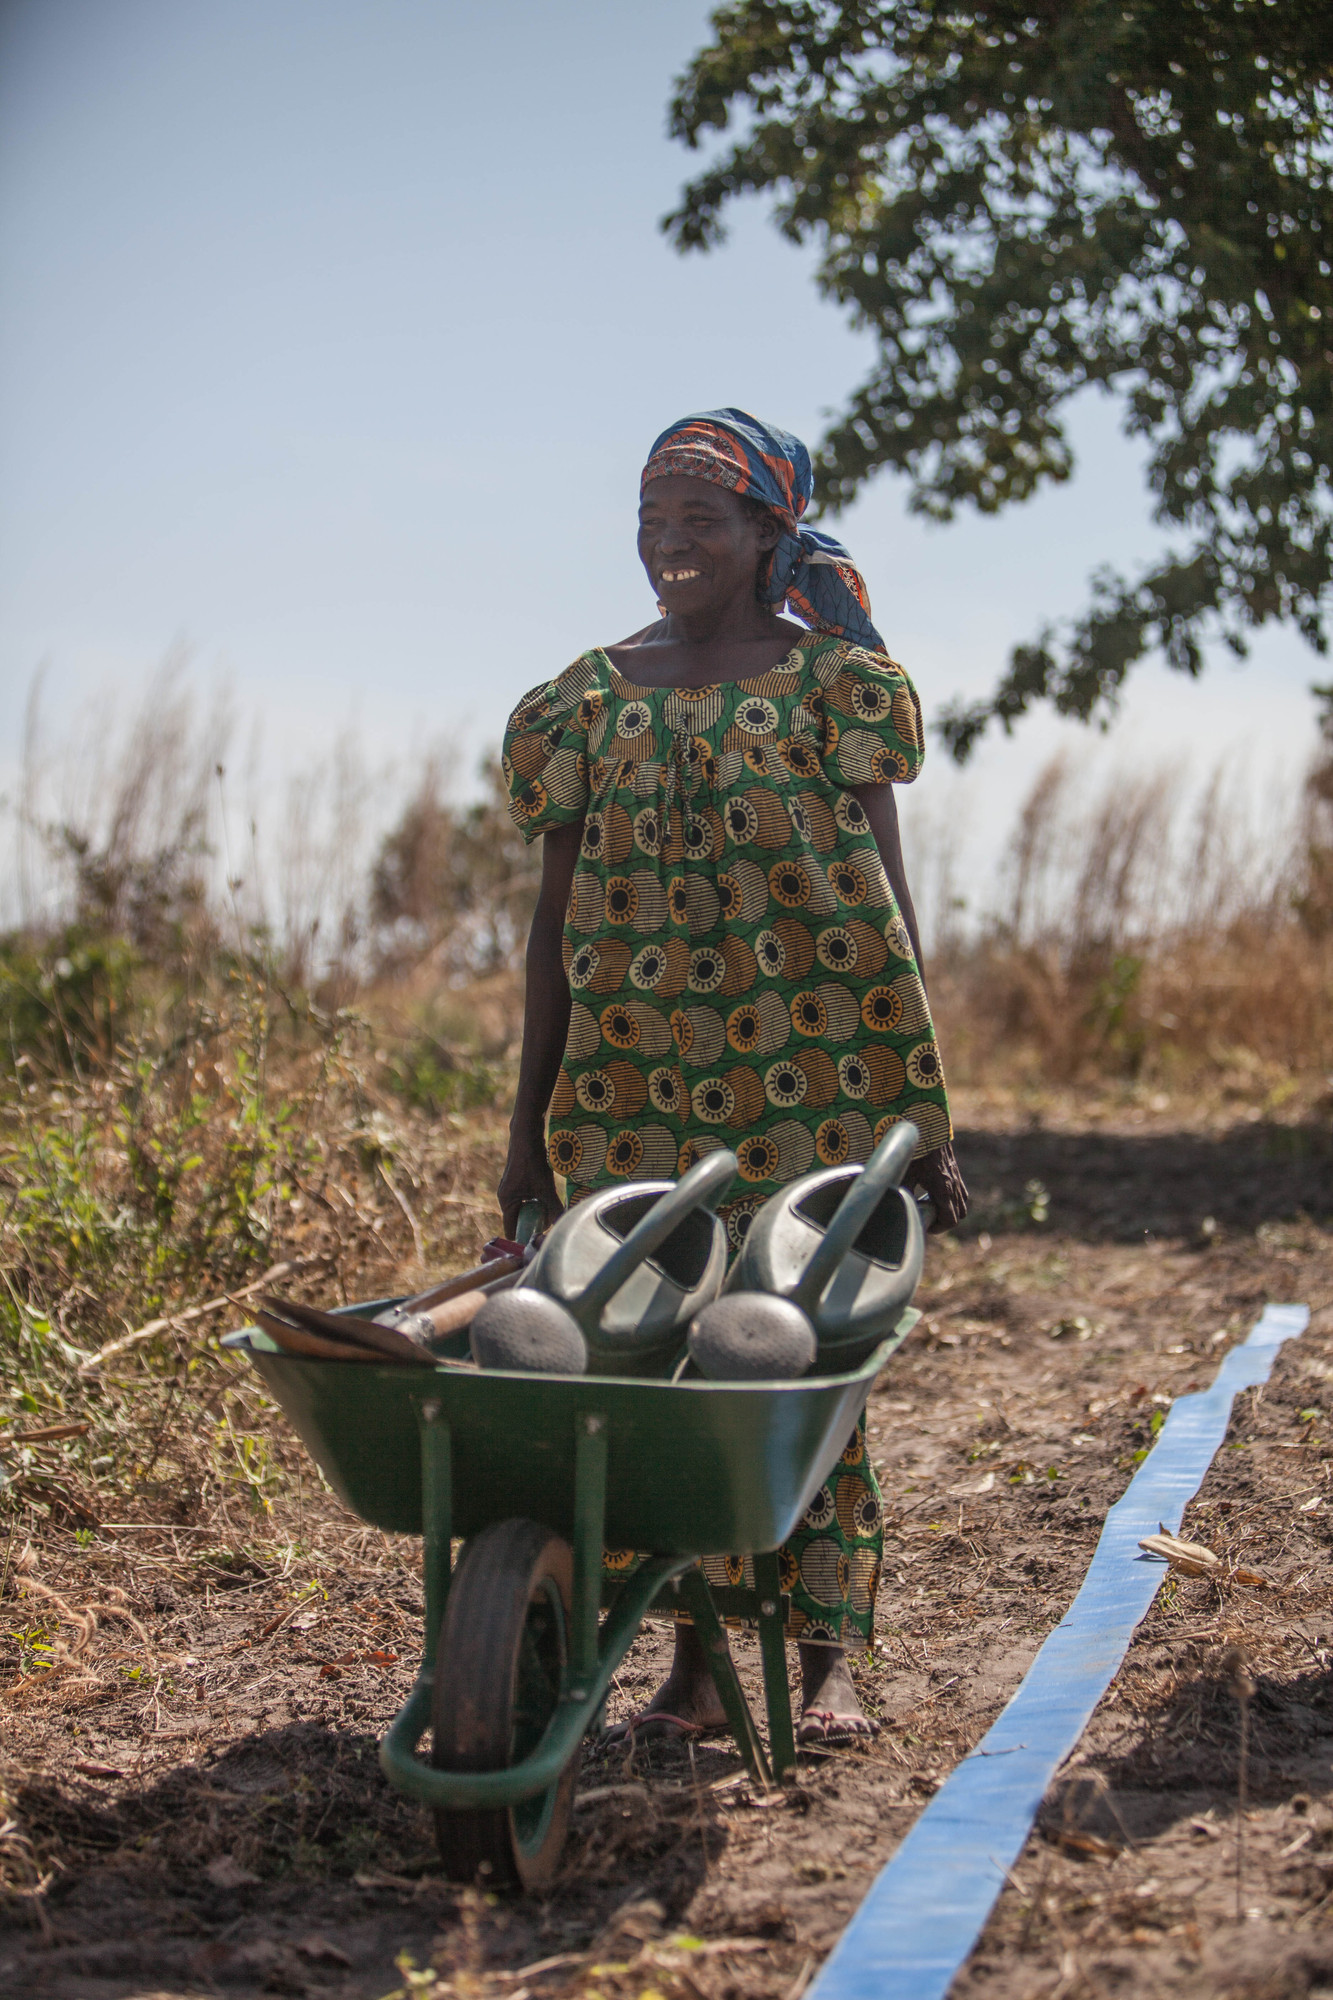 With tools and an irrigation hose from MCC, Koutou Melanie and other women cultivate vegetables in the dry season.